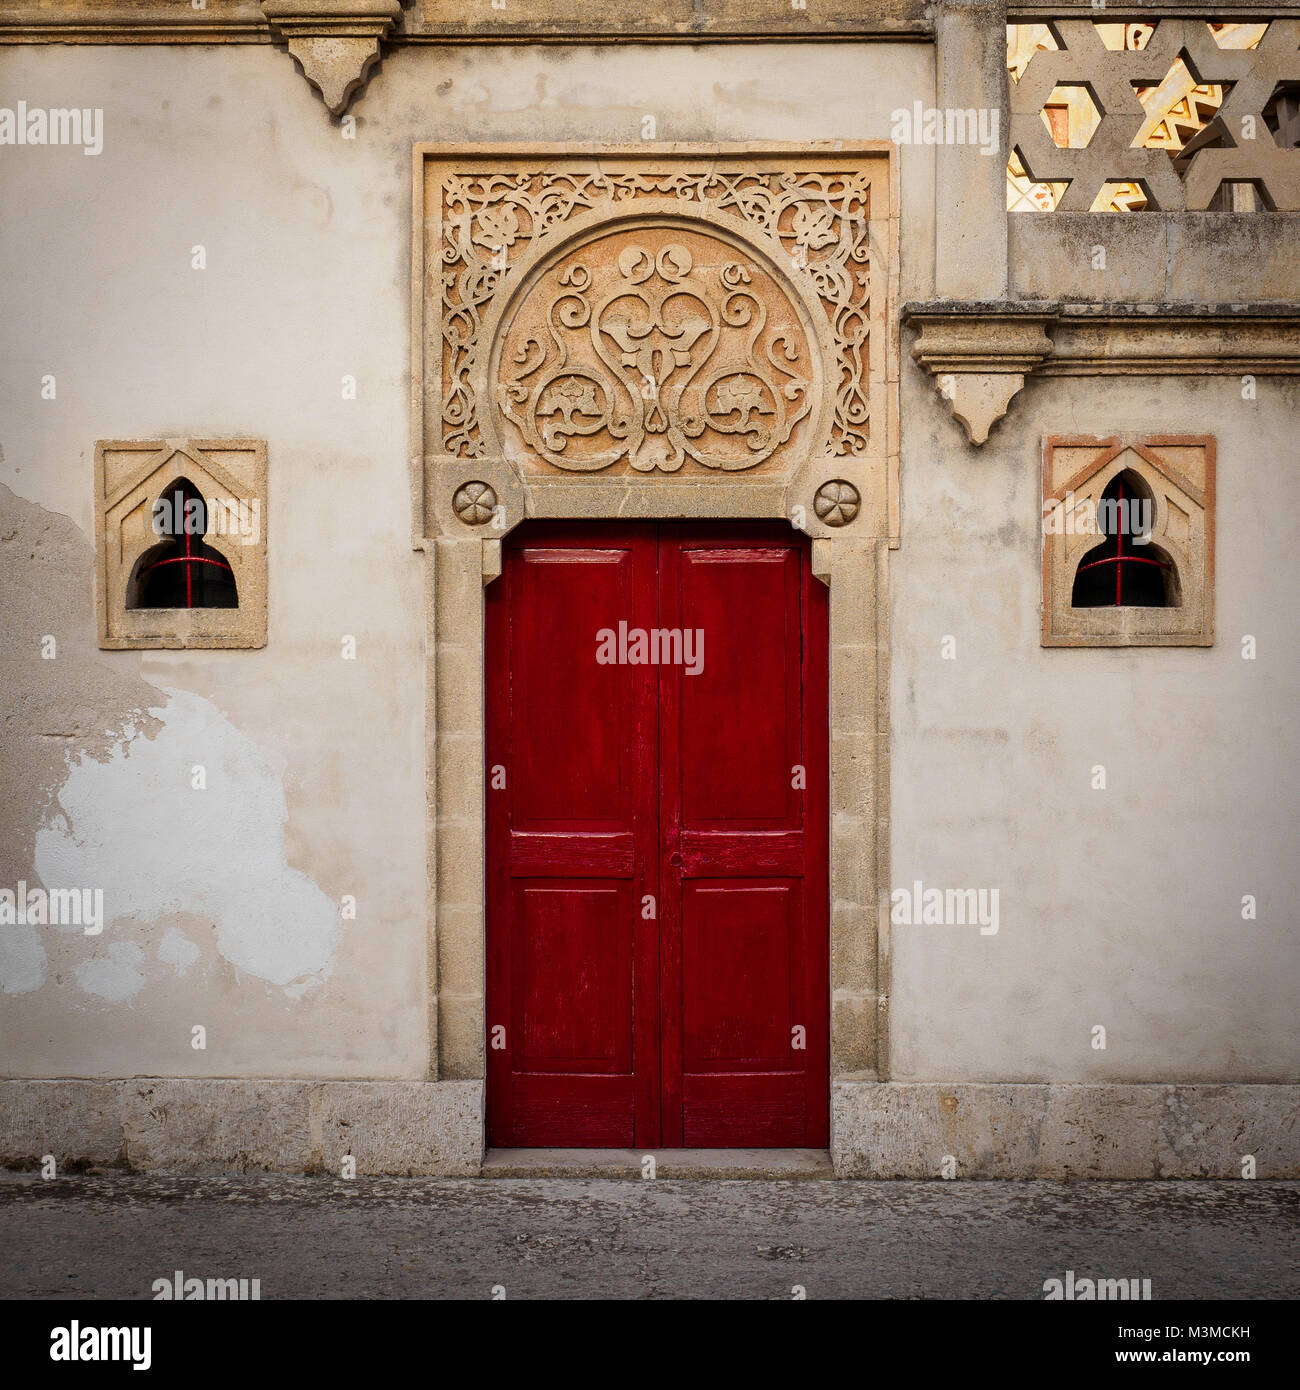 Santa Cesarea Terme (Italy), August 2017. Red door in Villa Sticchi, one of the best example of Moorish architectural - Stock Image